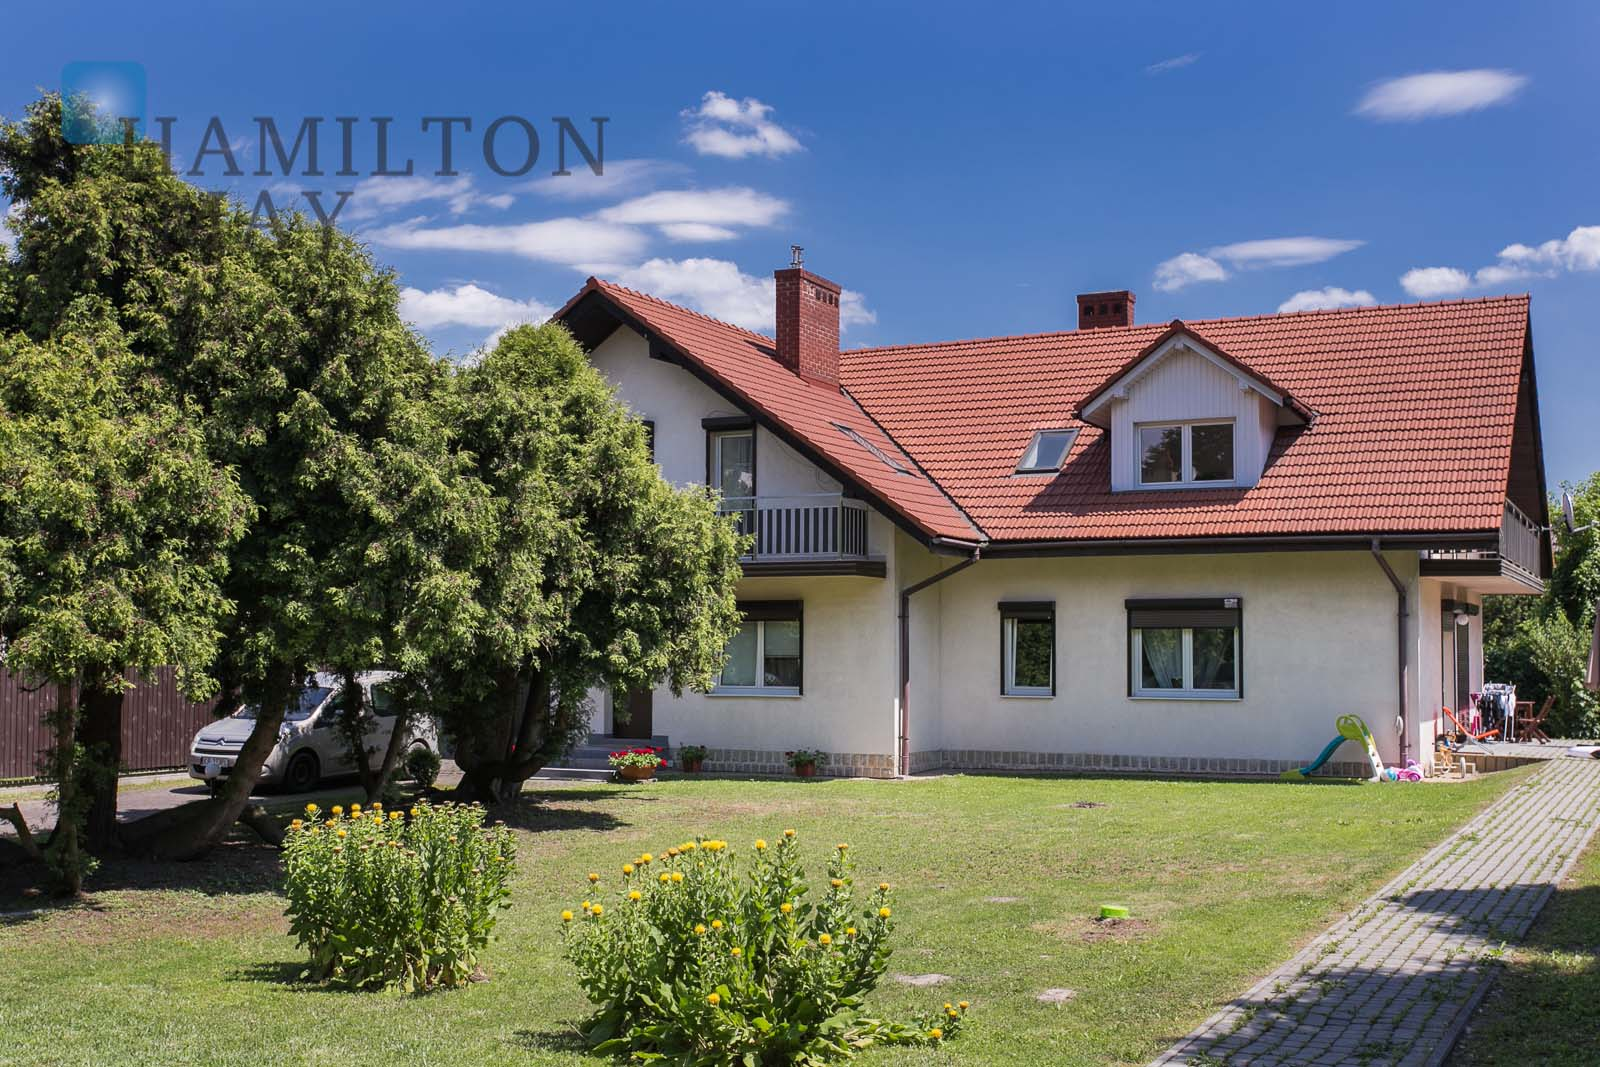 A spacious house near Park Decjusza in Wola Justowska Krakow for sale